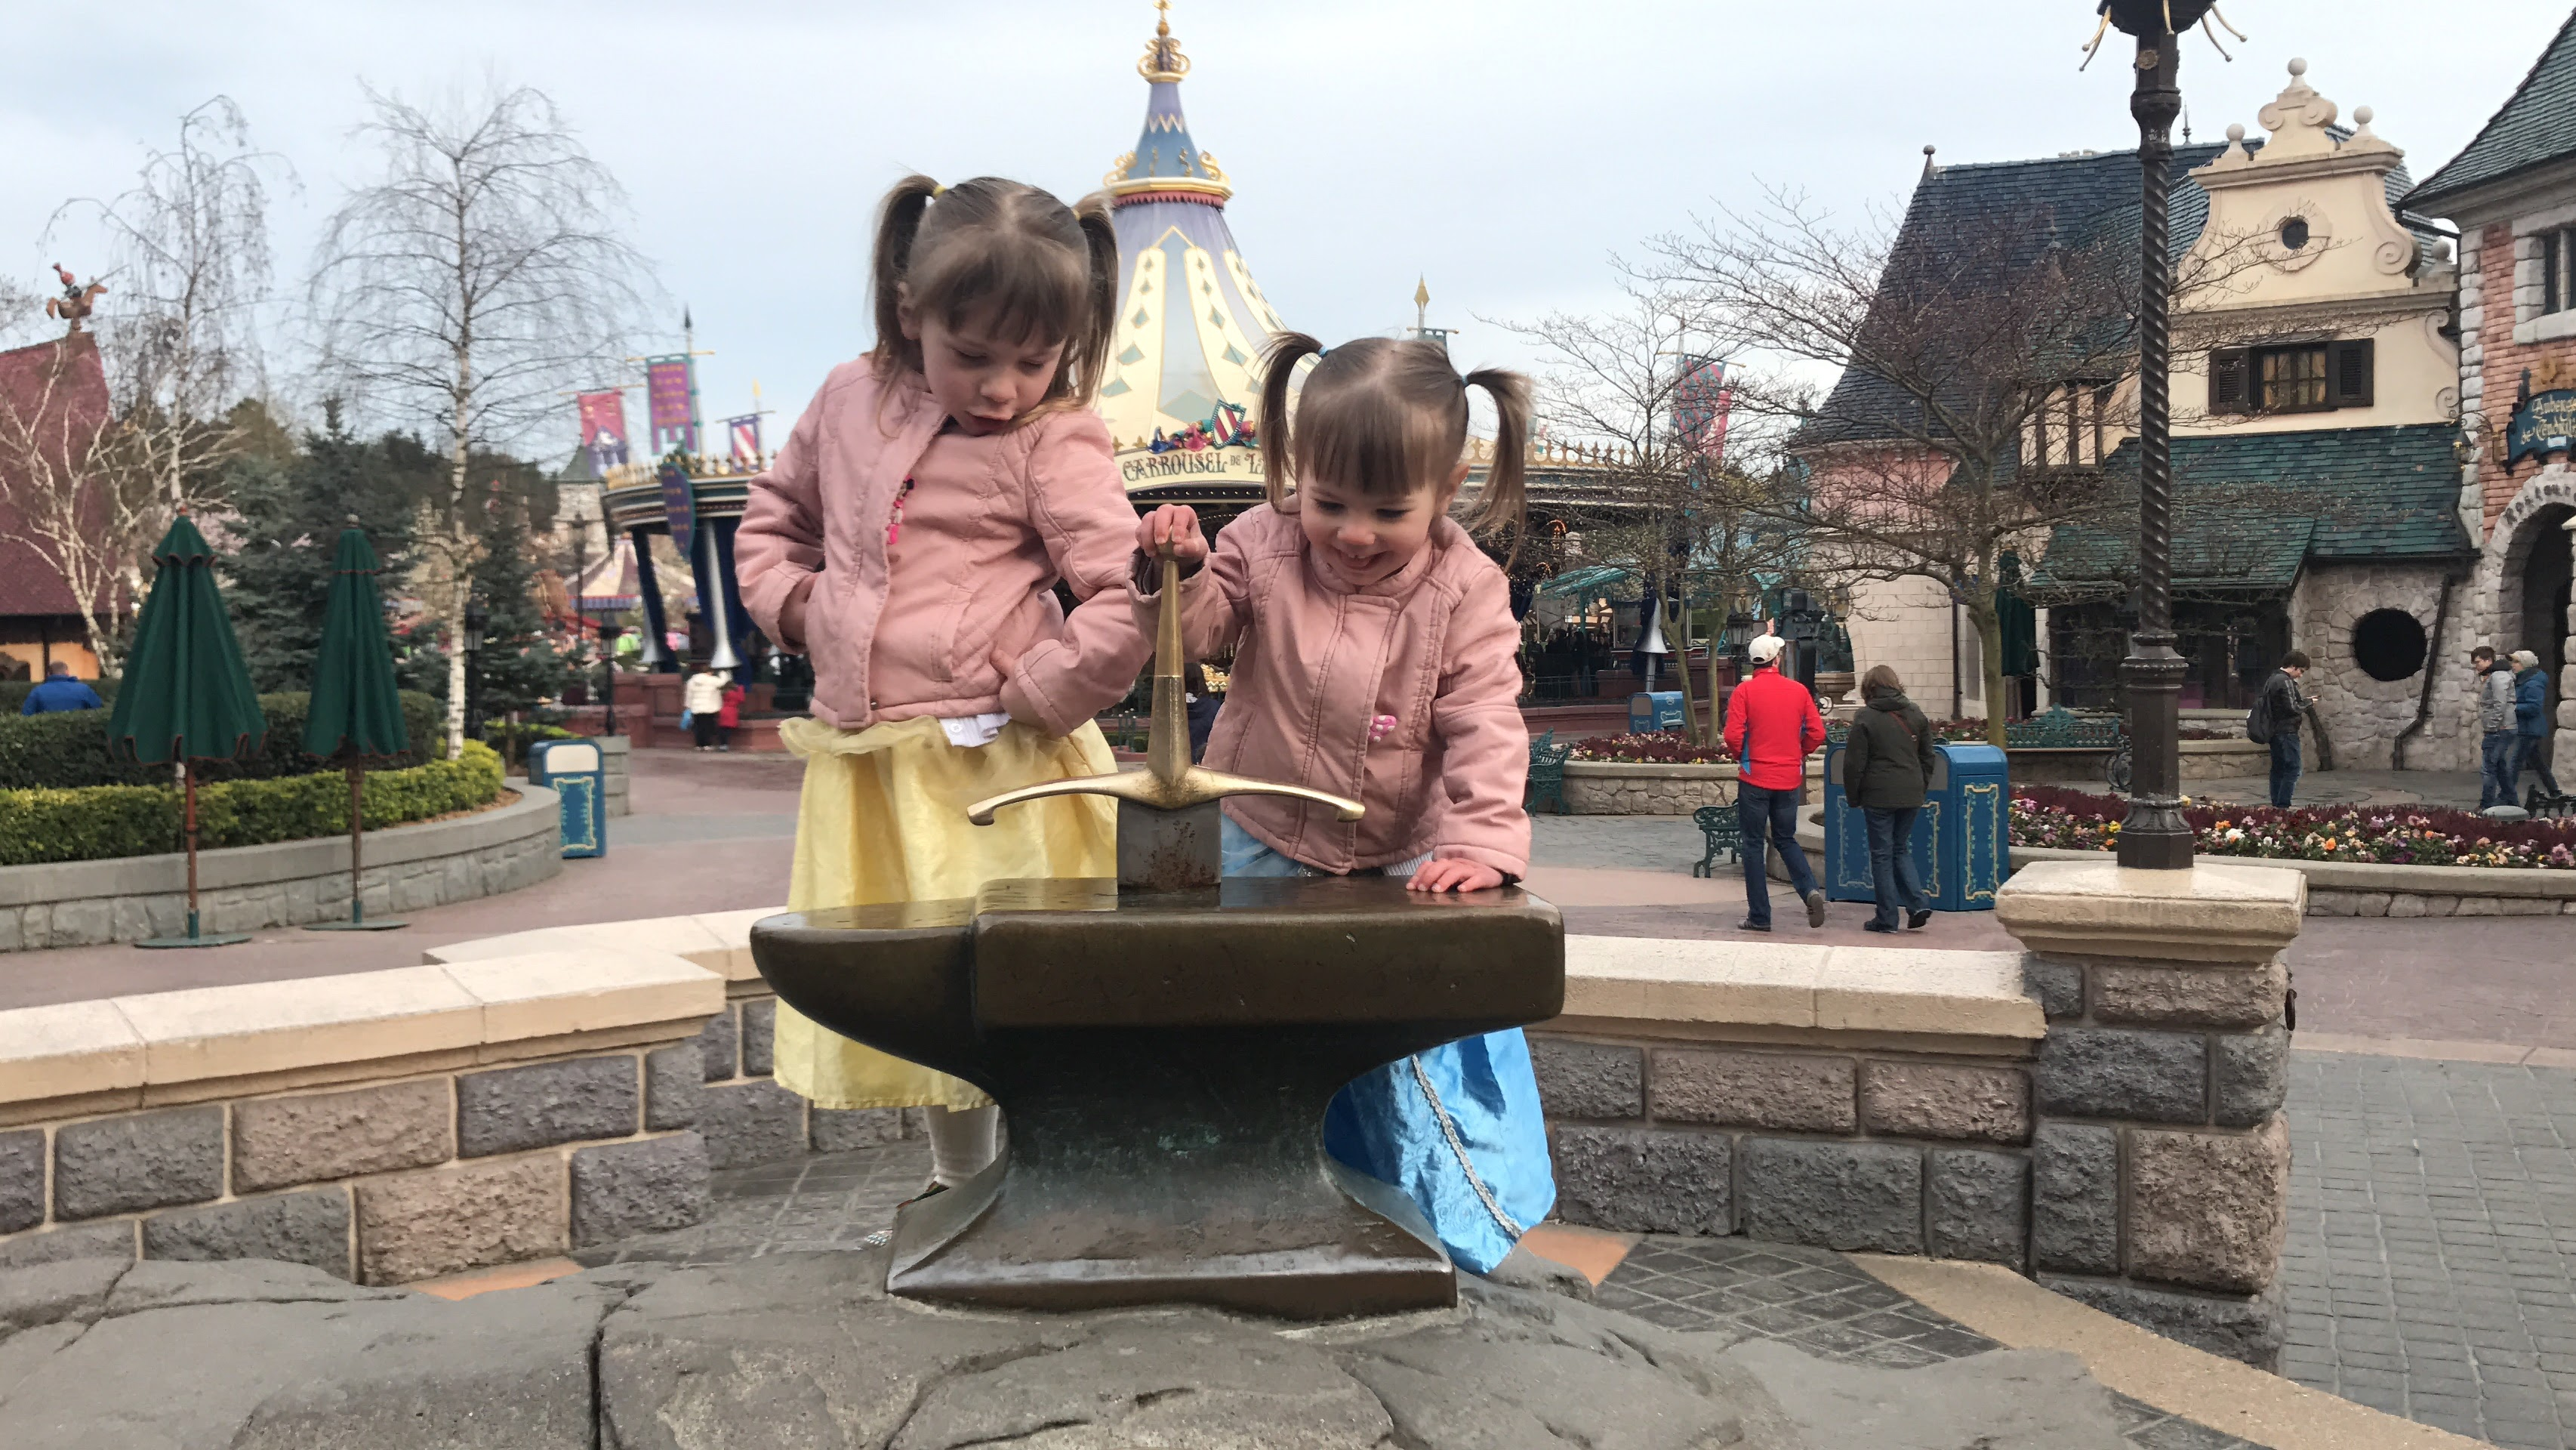 Looking for the best Disneyland Paris information? Check out these places!